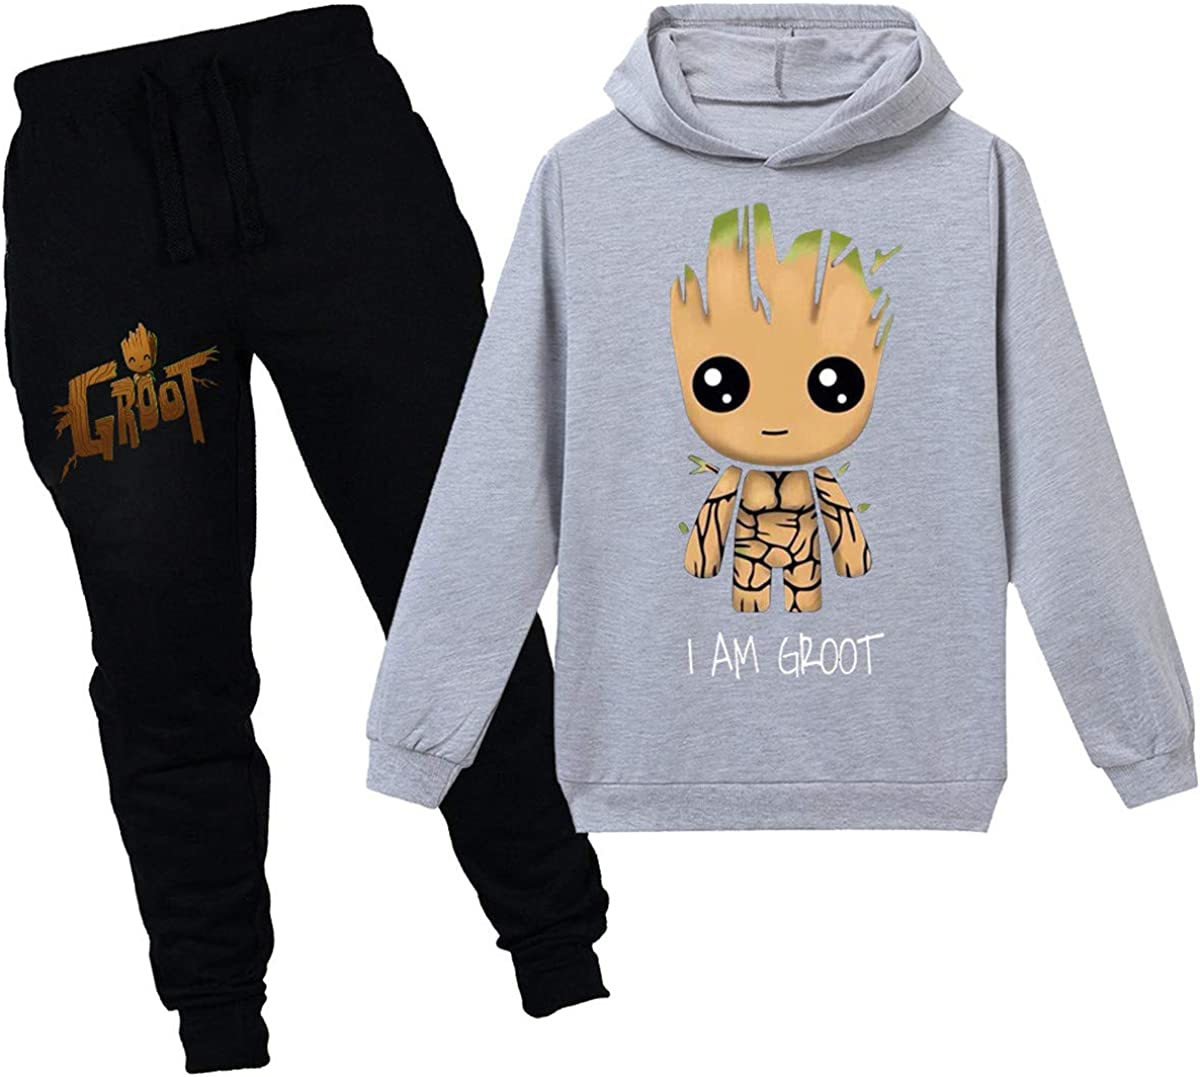 NONEM Groot Hoodies-Youth Boys Pullover Sweatshirts Long Sleeve Sweater 2 Pcs Hooded Sets